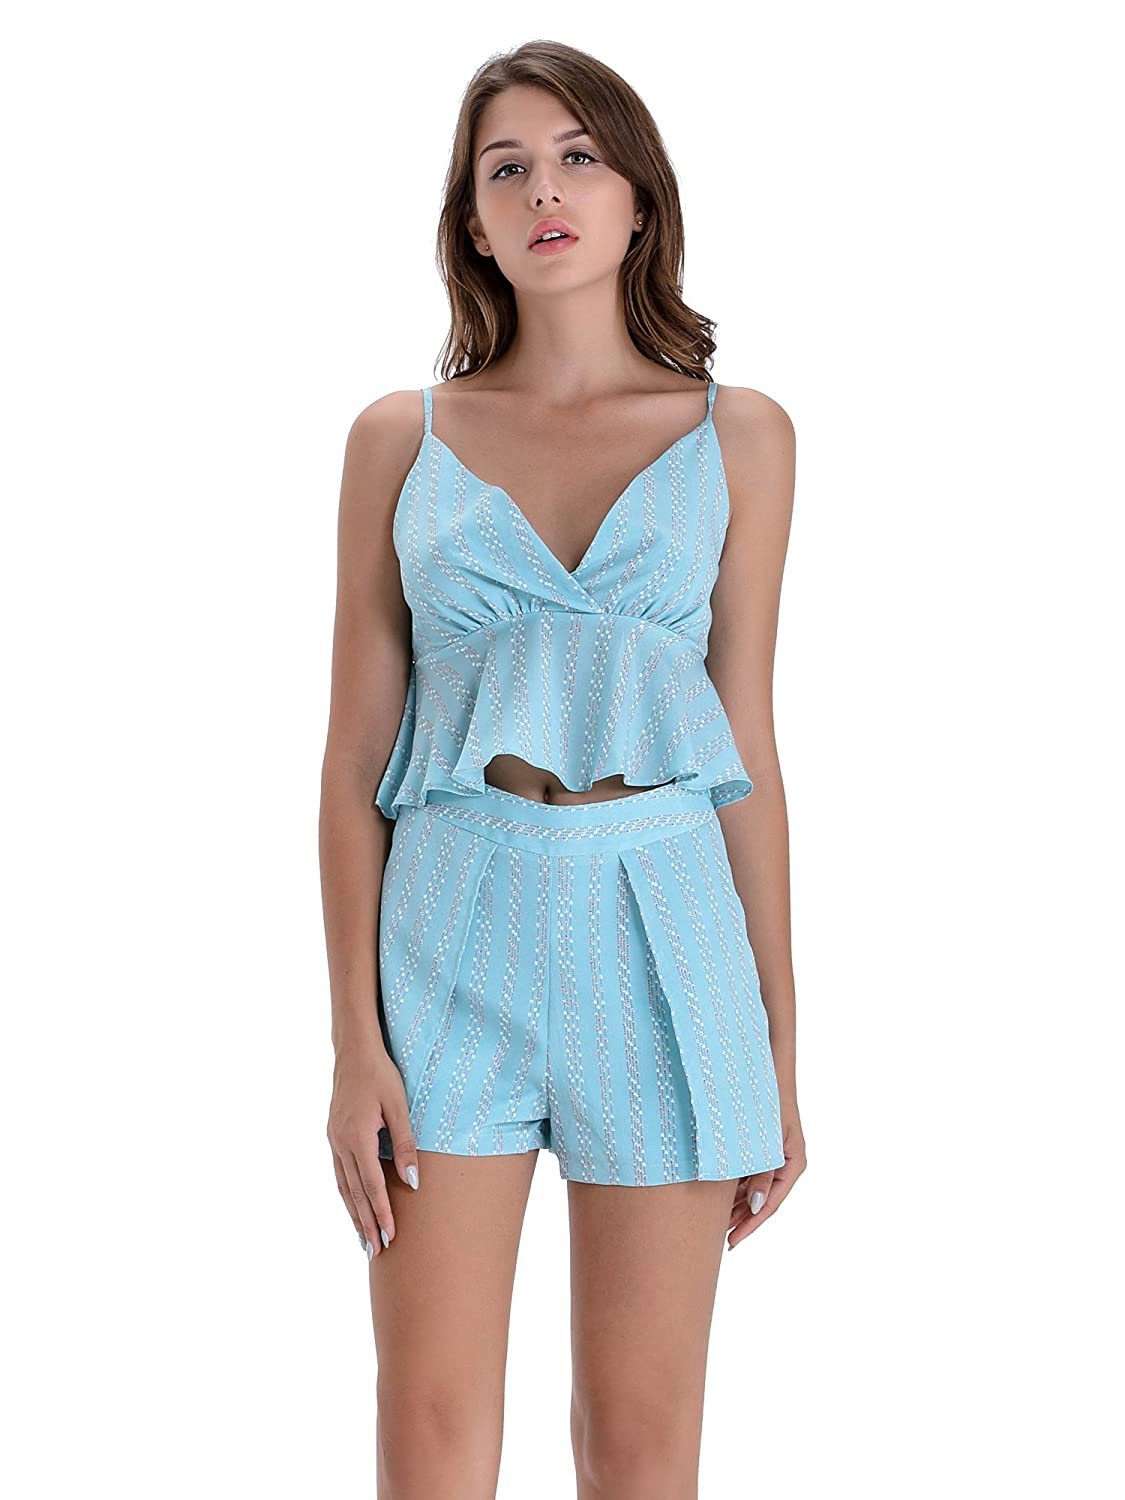 f252c0175585 Wherever you roam, the women short sets outfits Two-Piece Romper crop top  and skirt set will provide effortless style the entire way! Deep V neck  design, ...